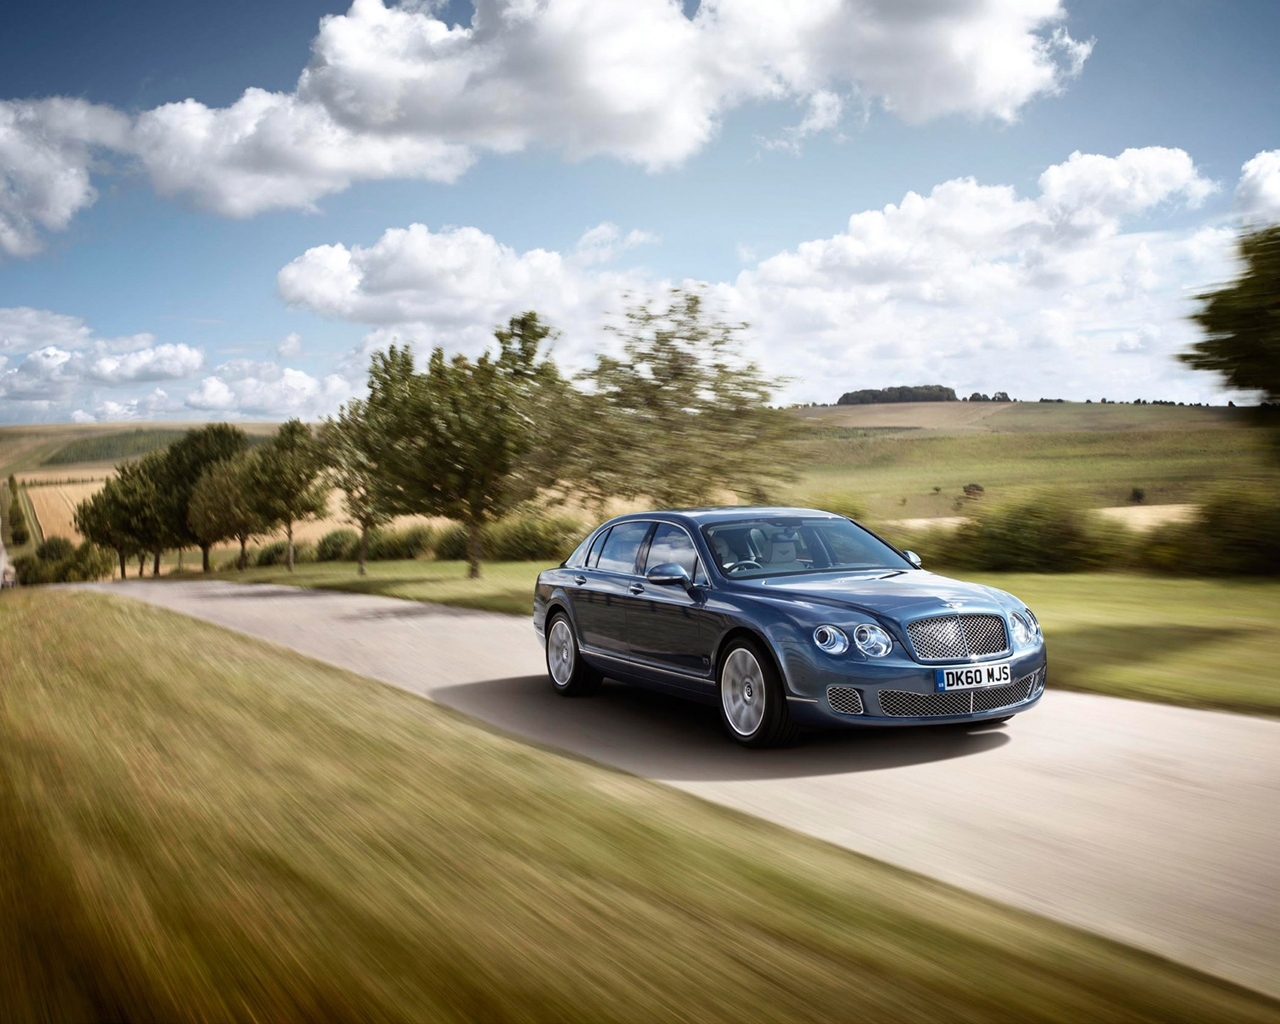 Beautiful Bentley Continental Flying Spur